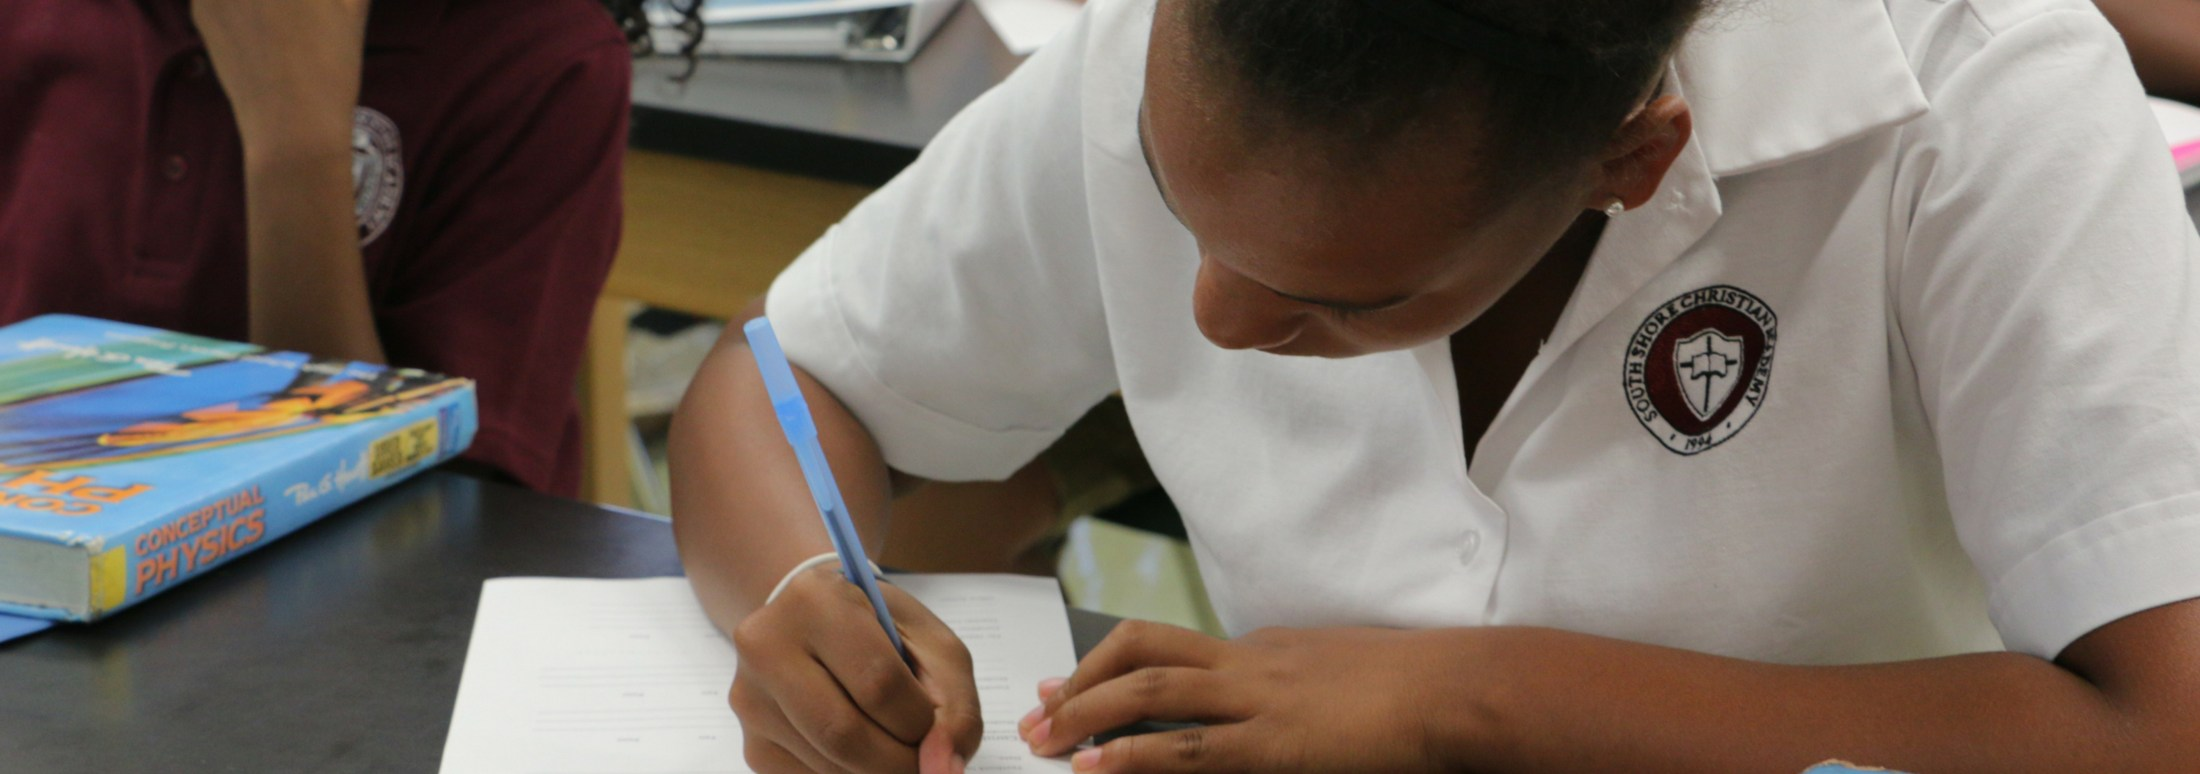 Student working at her desk